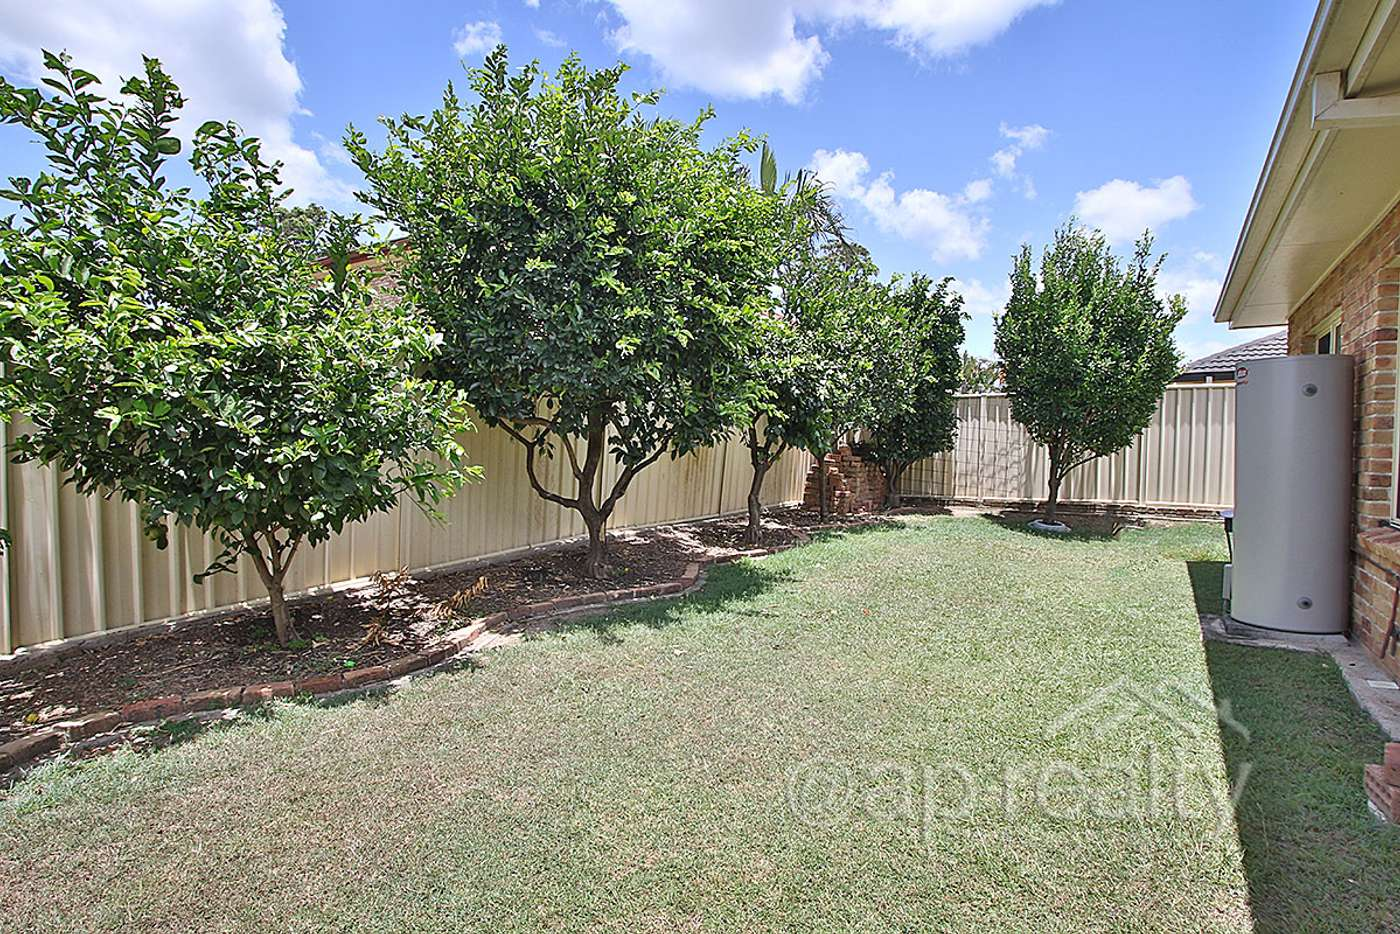 Sixth view of Homely house listing, 16 St Andrews Ave, Forest Lake QLD 4078